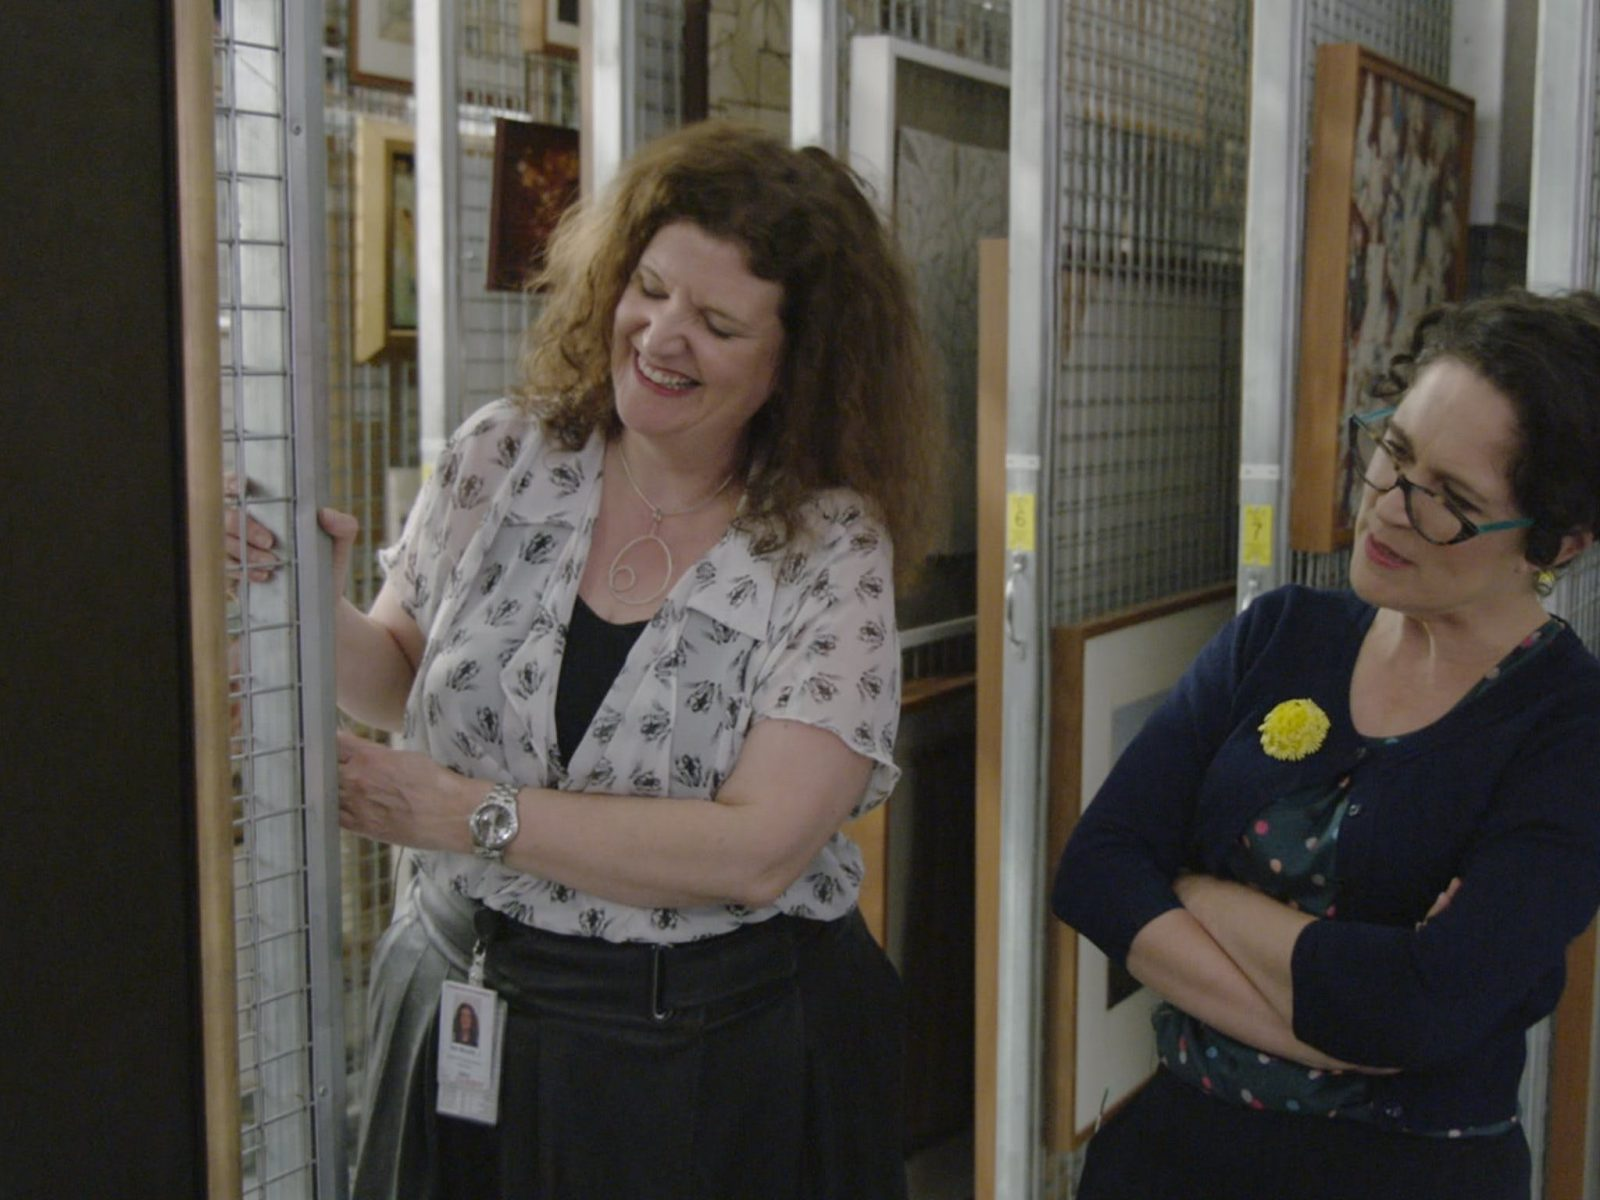 Parliament House Art Director Justine Van Mourik talks with Annabel Crabb while they look at art